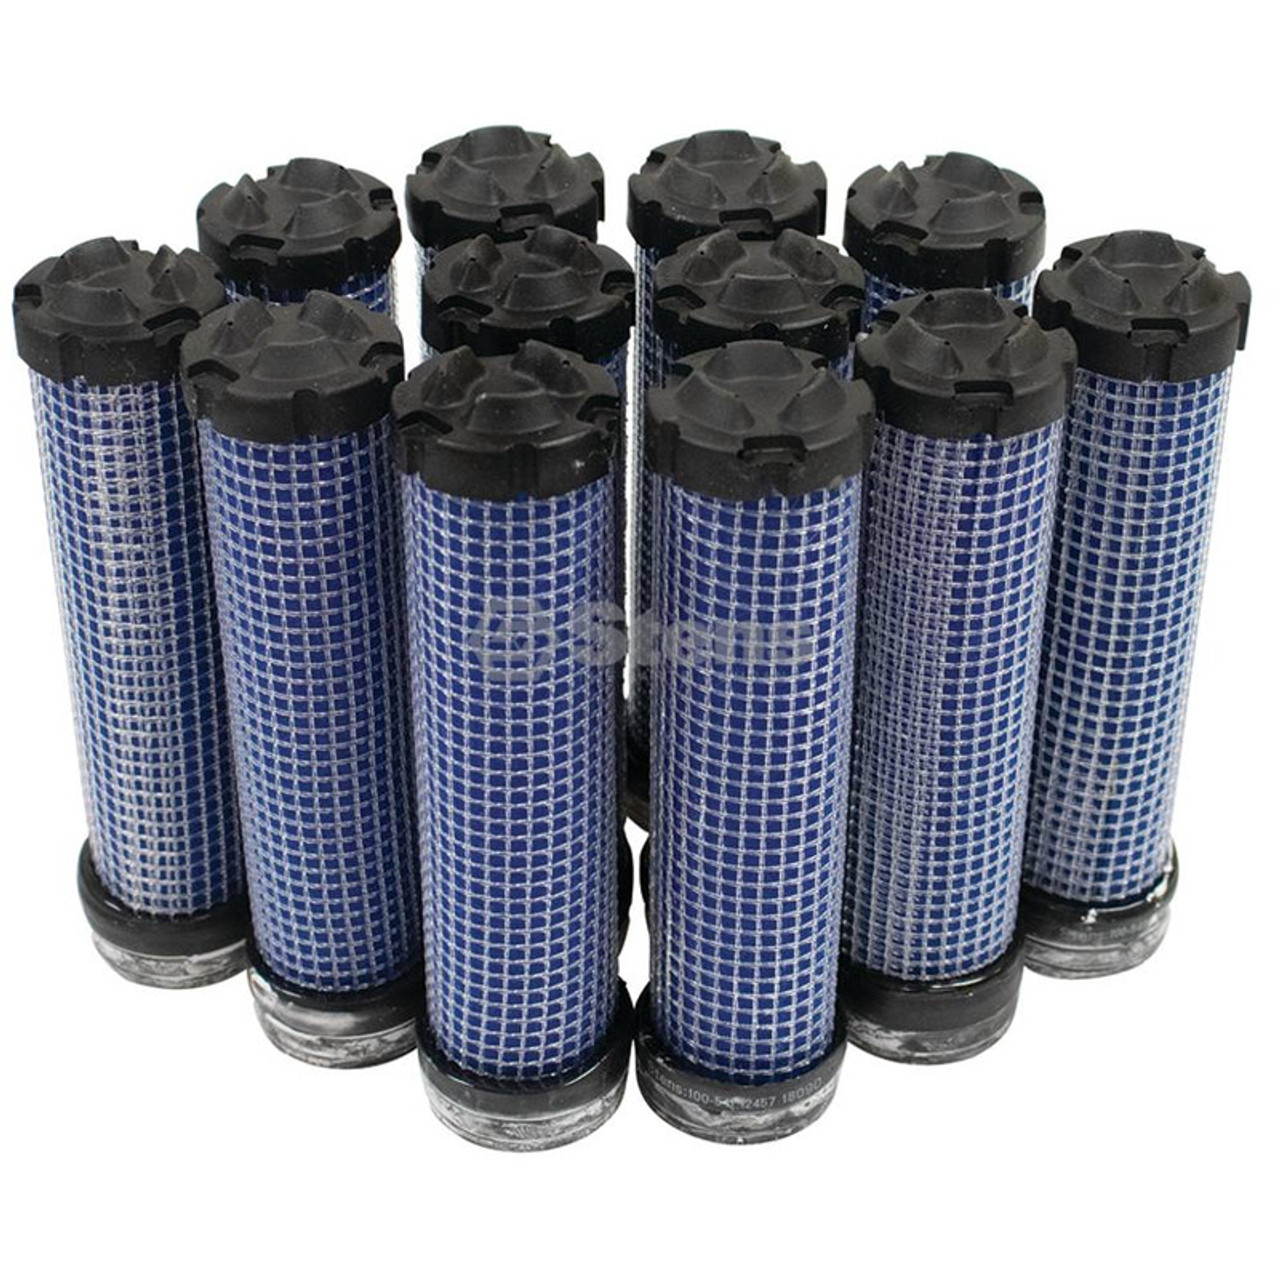 Inner Air Filter for Toro 982982, 98-2982, Shop Pack of 12 Air Filters